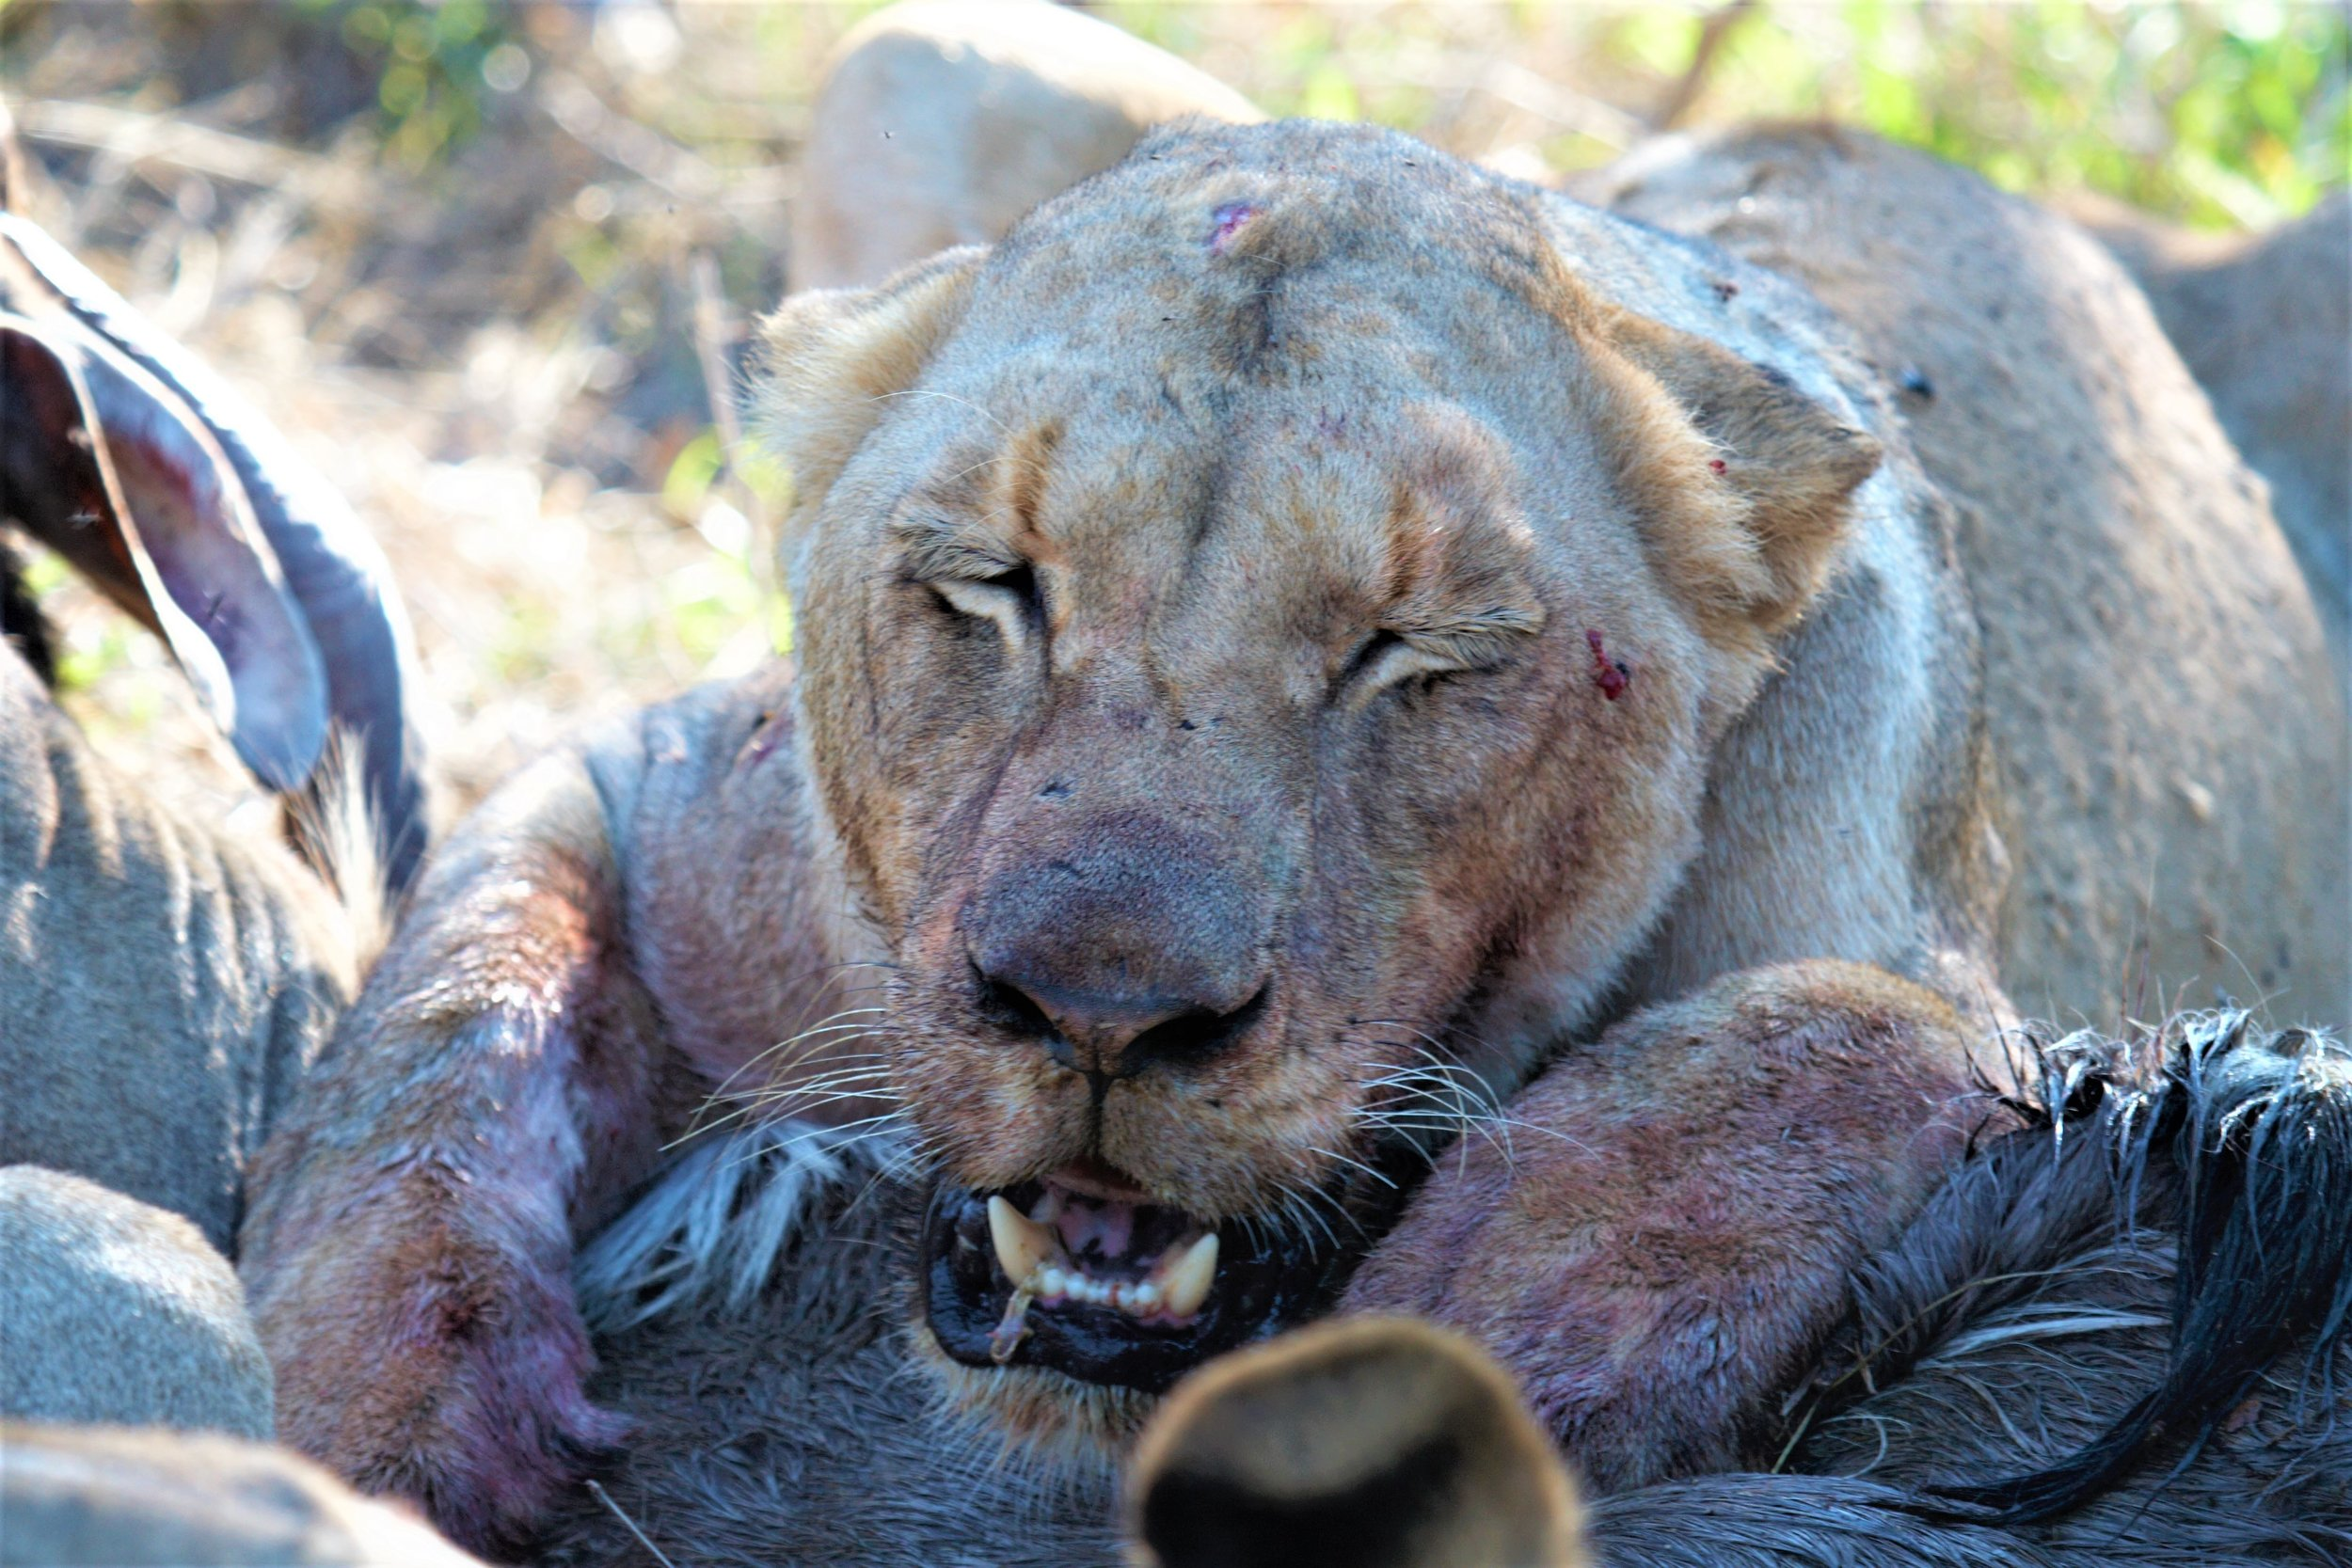 Lioness feasting on her kill